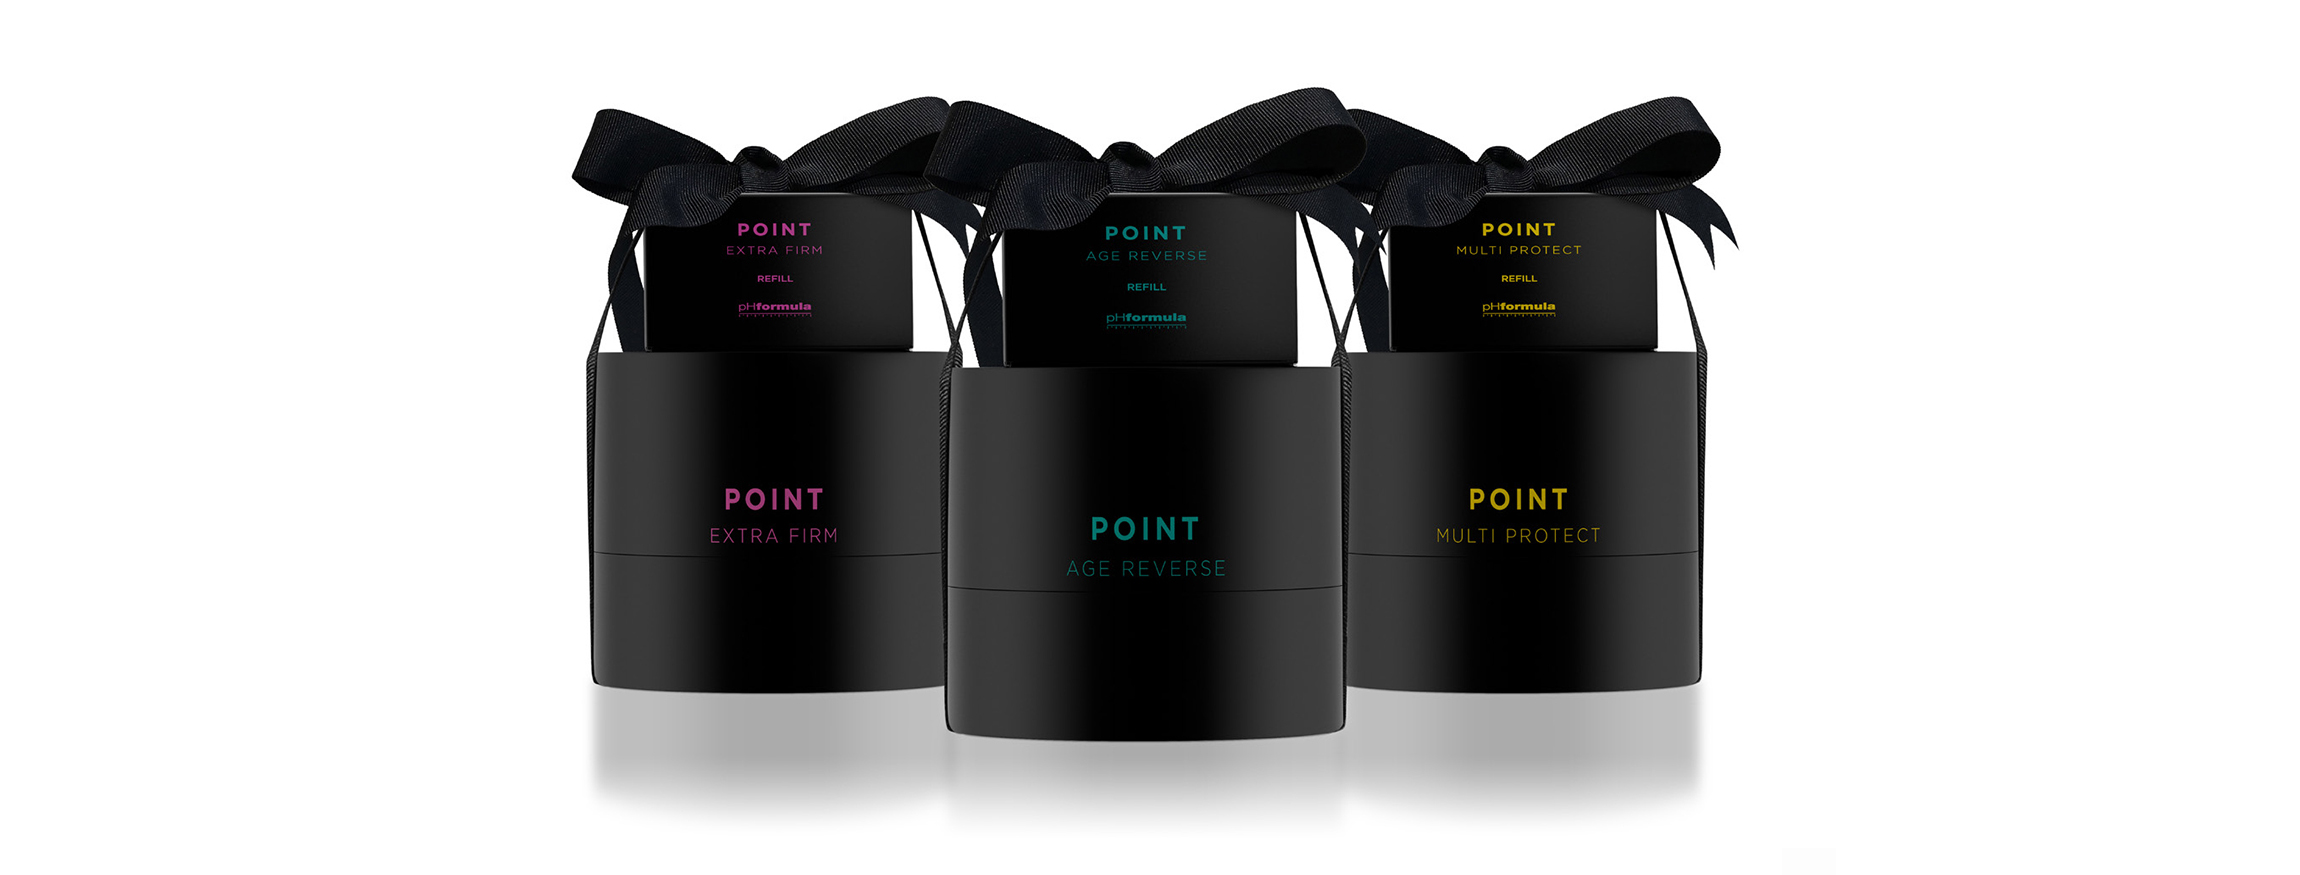 pHformula's POINT gifting solution